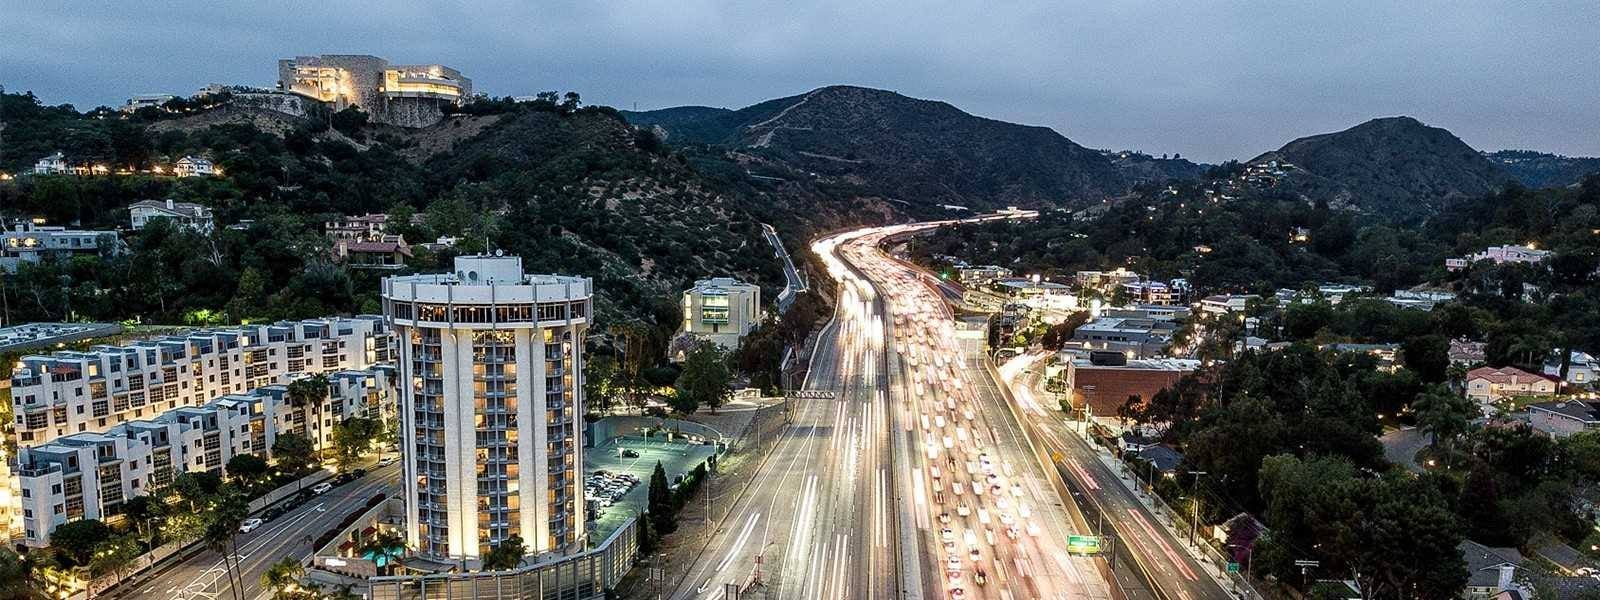 Aerial view of Hotel Angeleno and the 405 Freeway | Photo: Hotel Angeleno